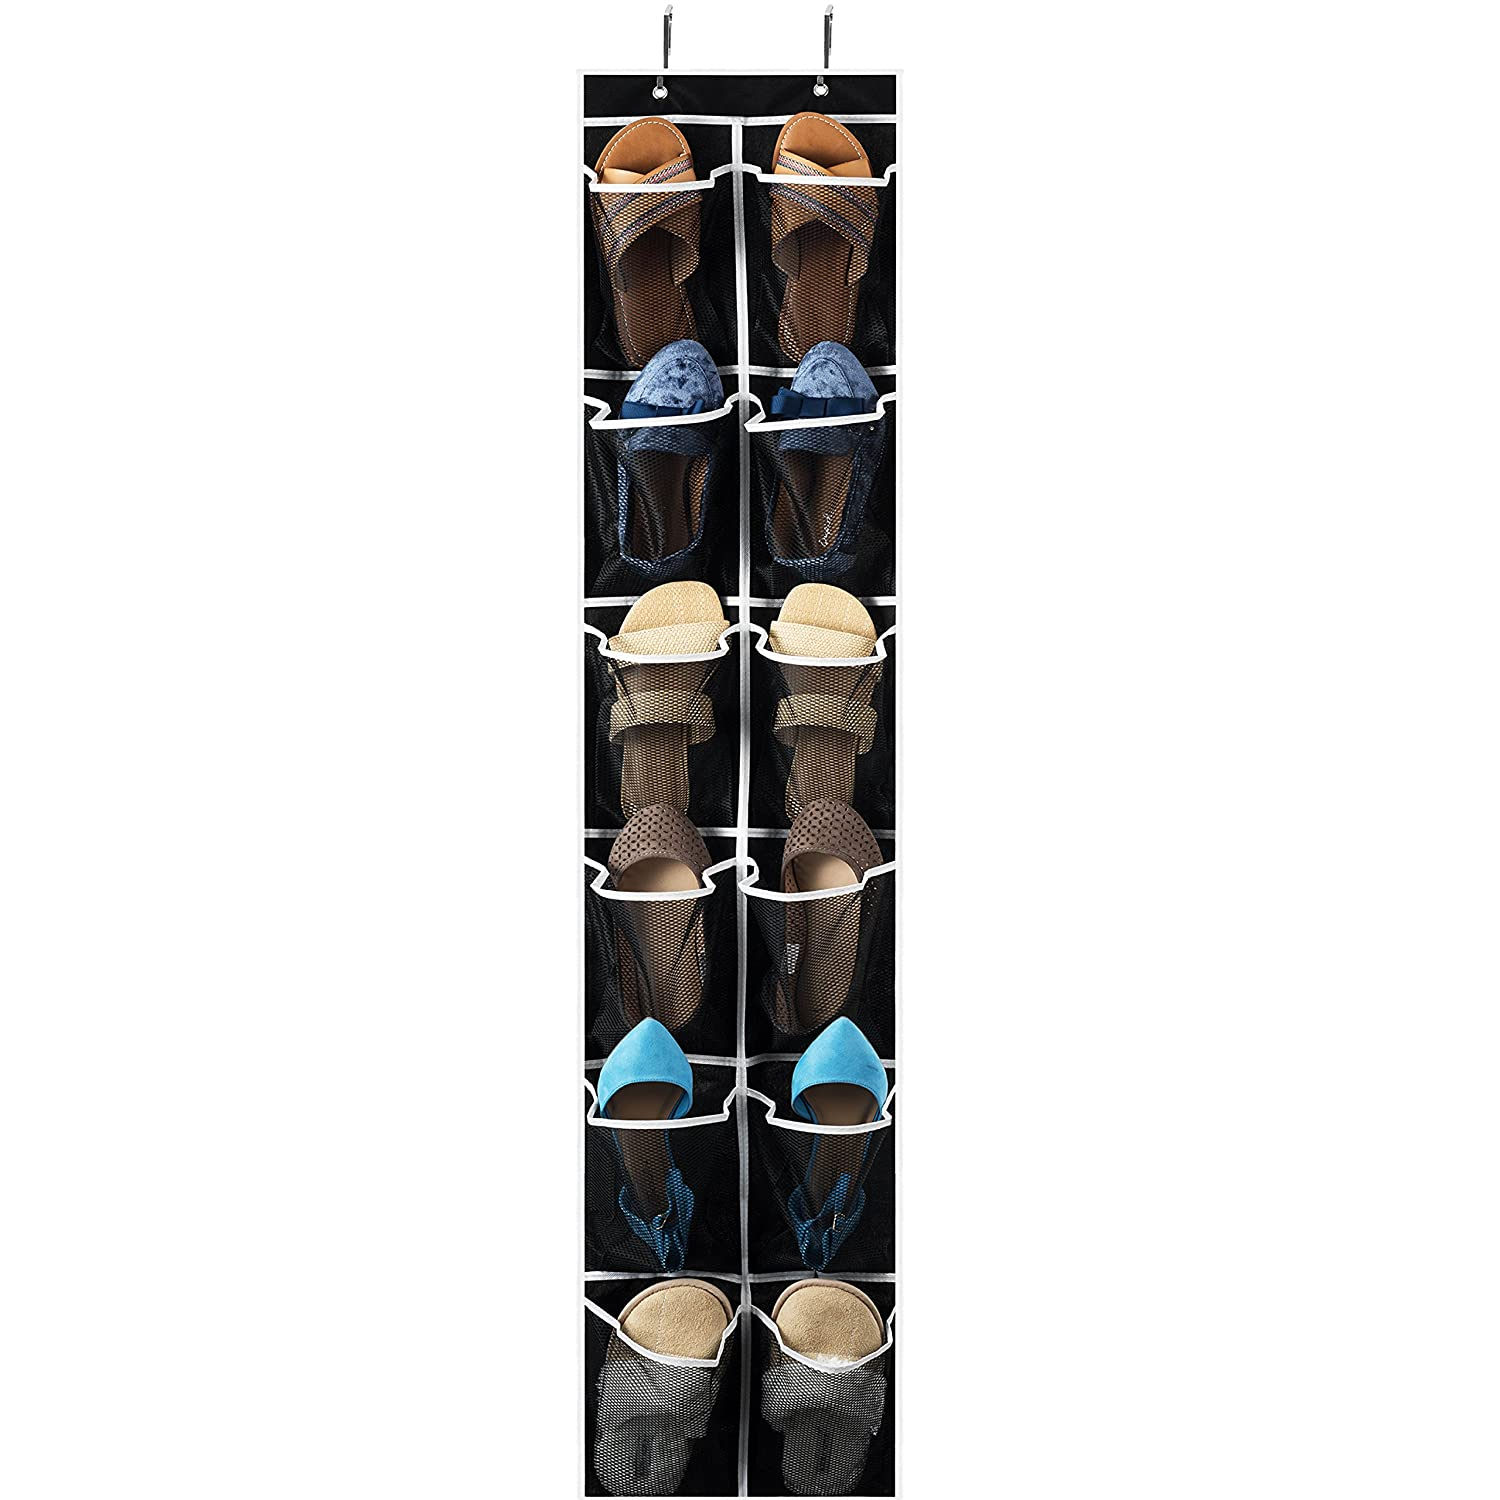 "Zober Over the Door Shoe Organizer - 12 Mesh Pockets, Space Saving Hanging Shoe Holder for Maximizing Shoe Storage, Accessories, Toiletries, Etc. No Assembly Required, Organizer for Shoes 571/2"" x 12"" ZO-NW401"